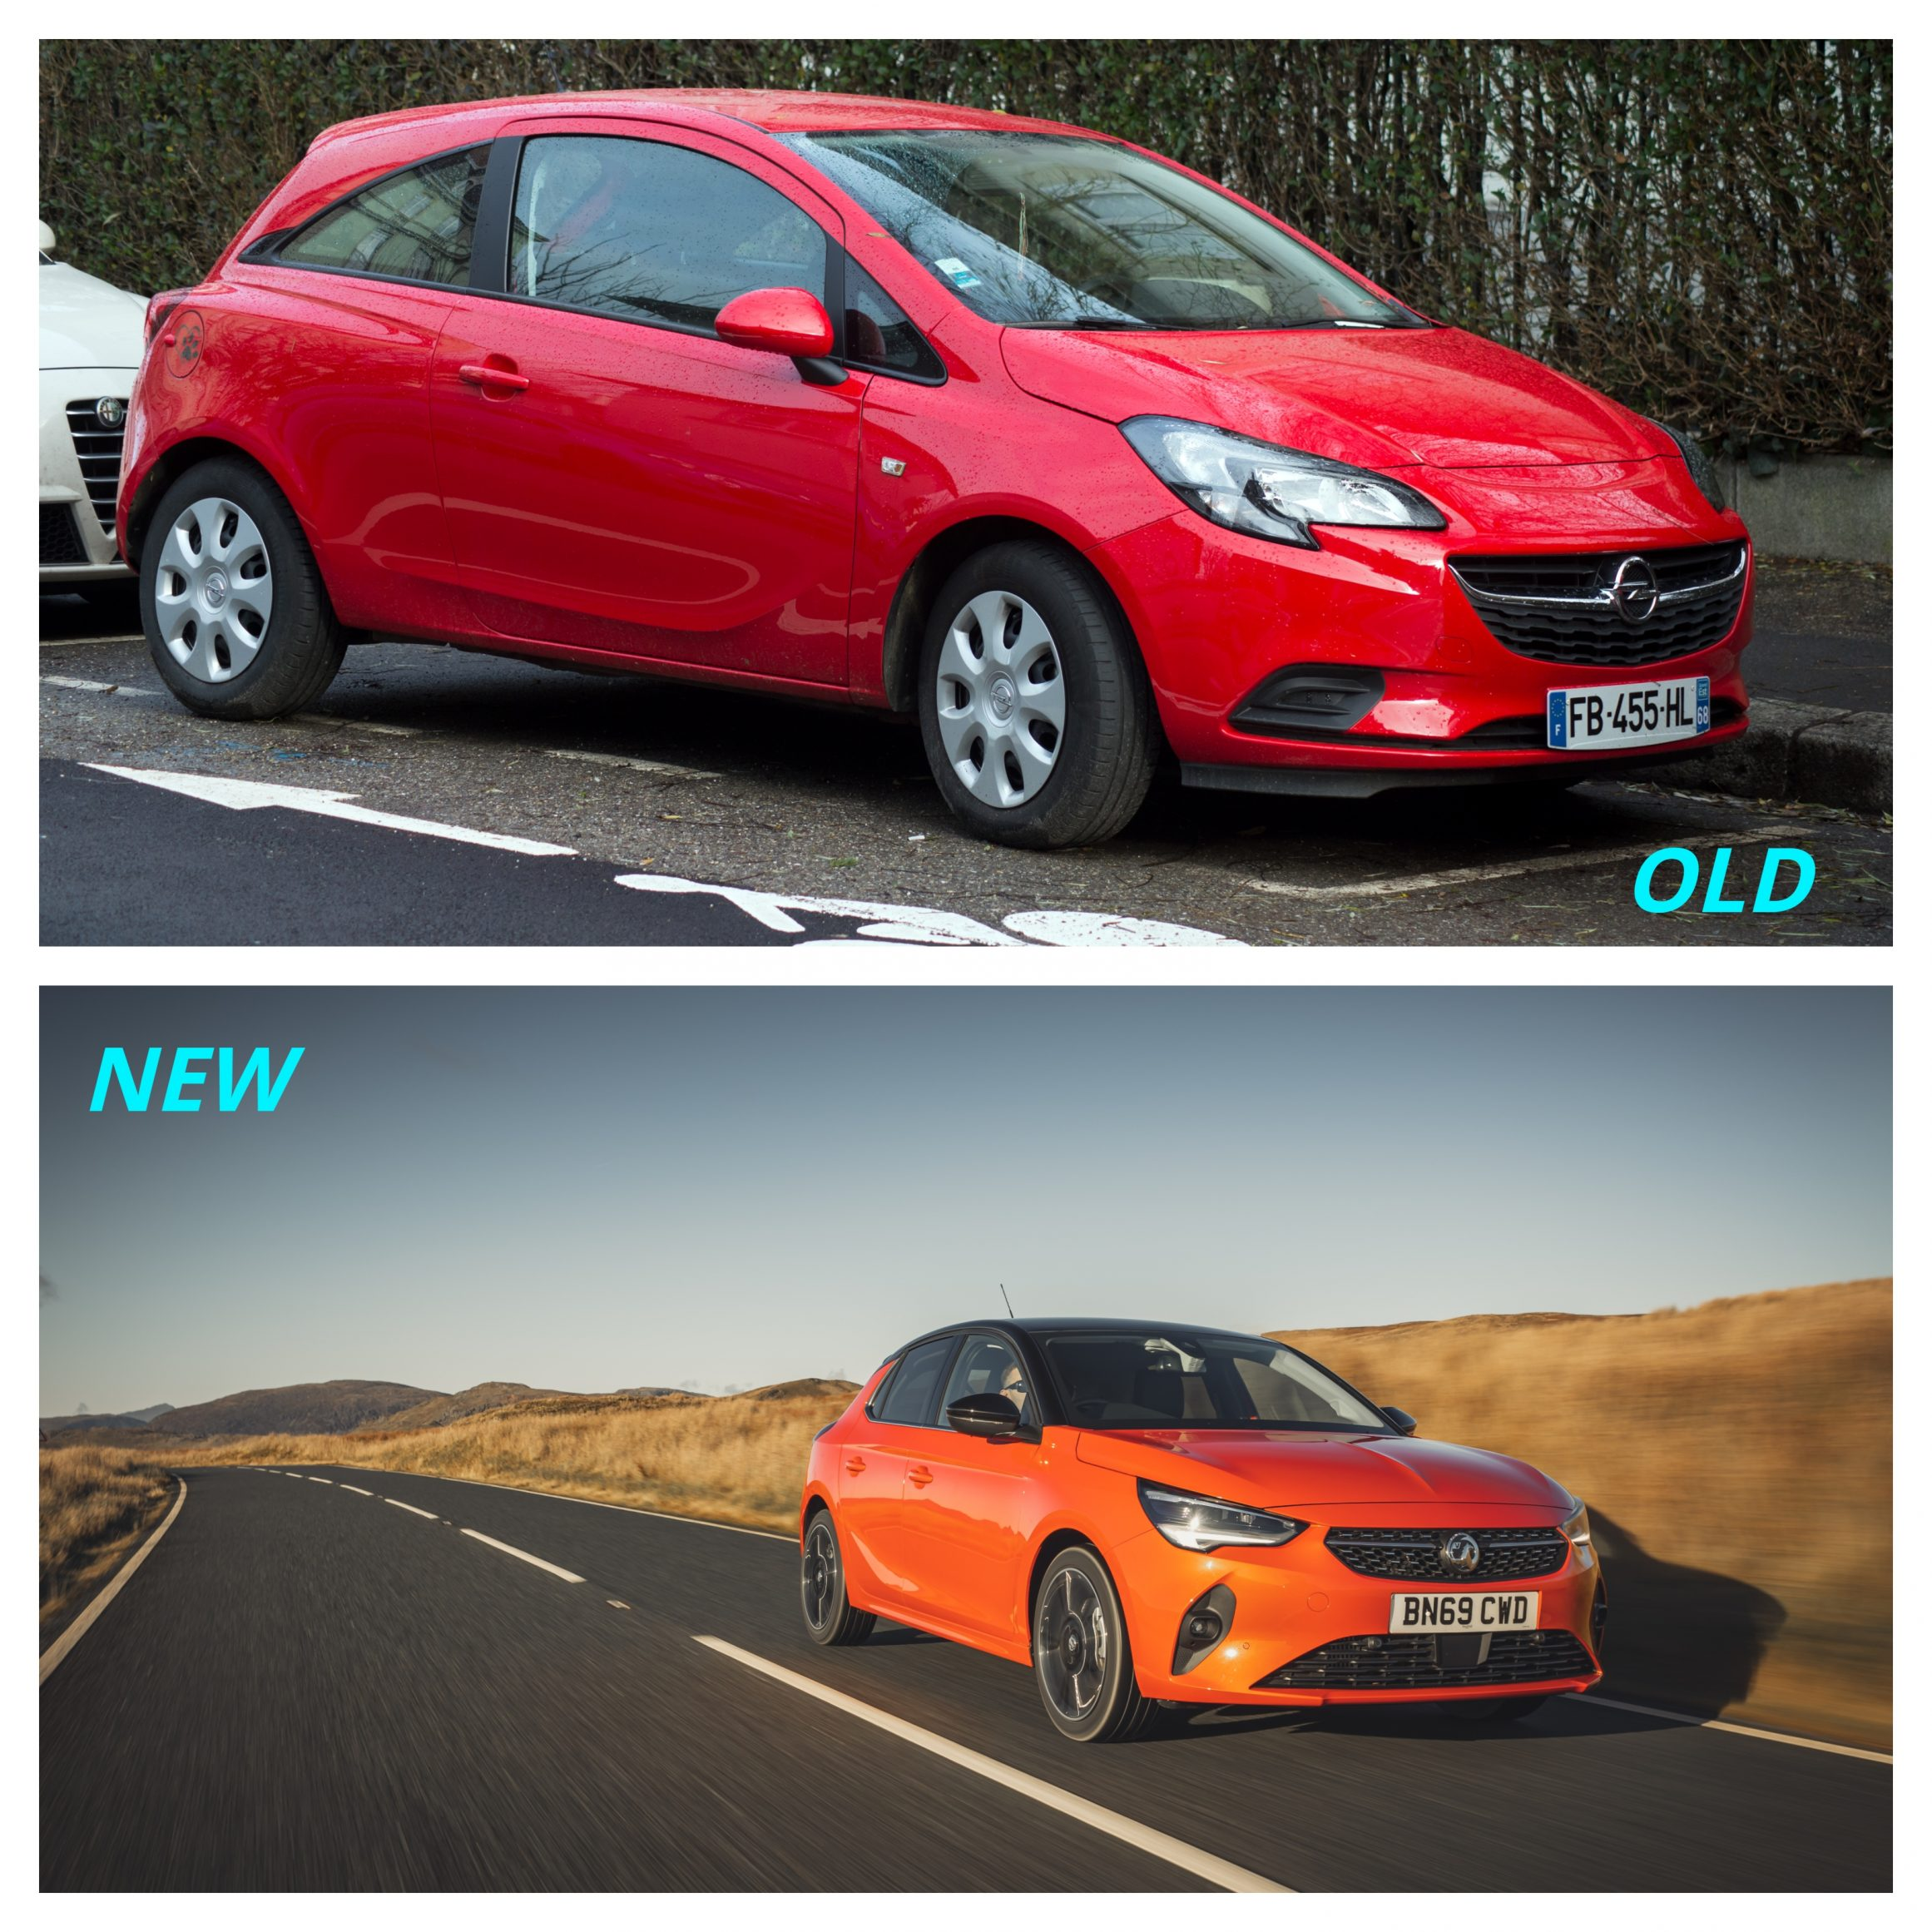 The new 2021 Vauxhall Corsa has been impressively facelifted over the years and is a great choice for a supermini